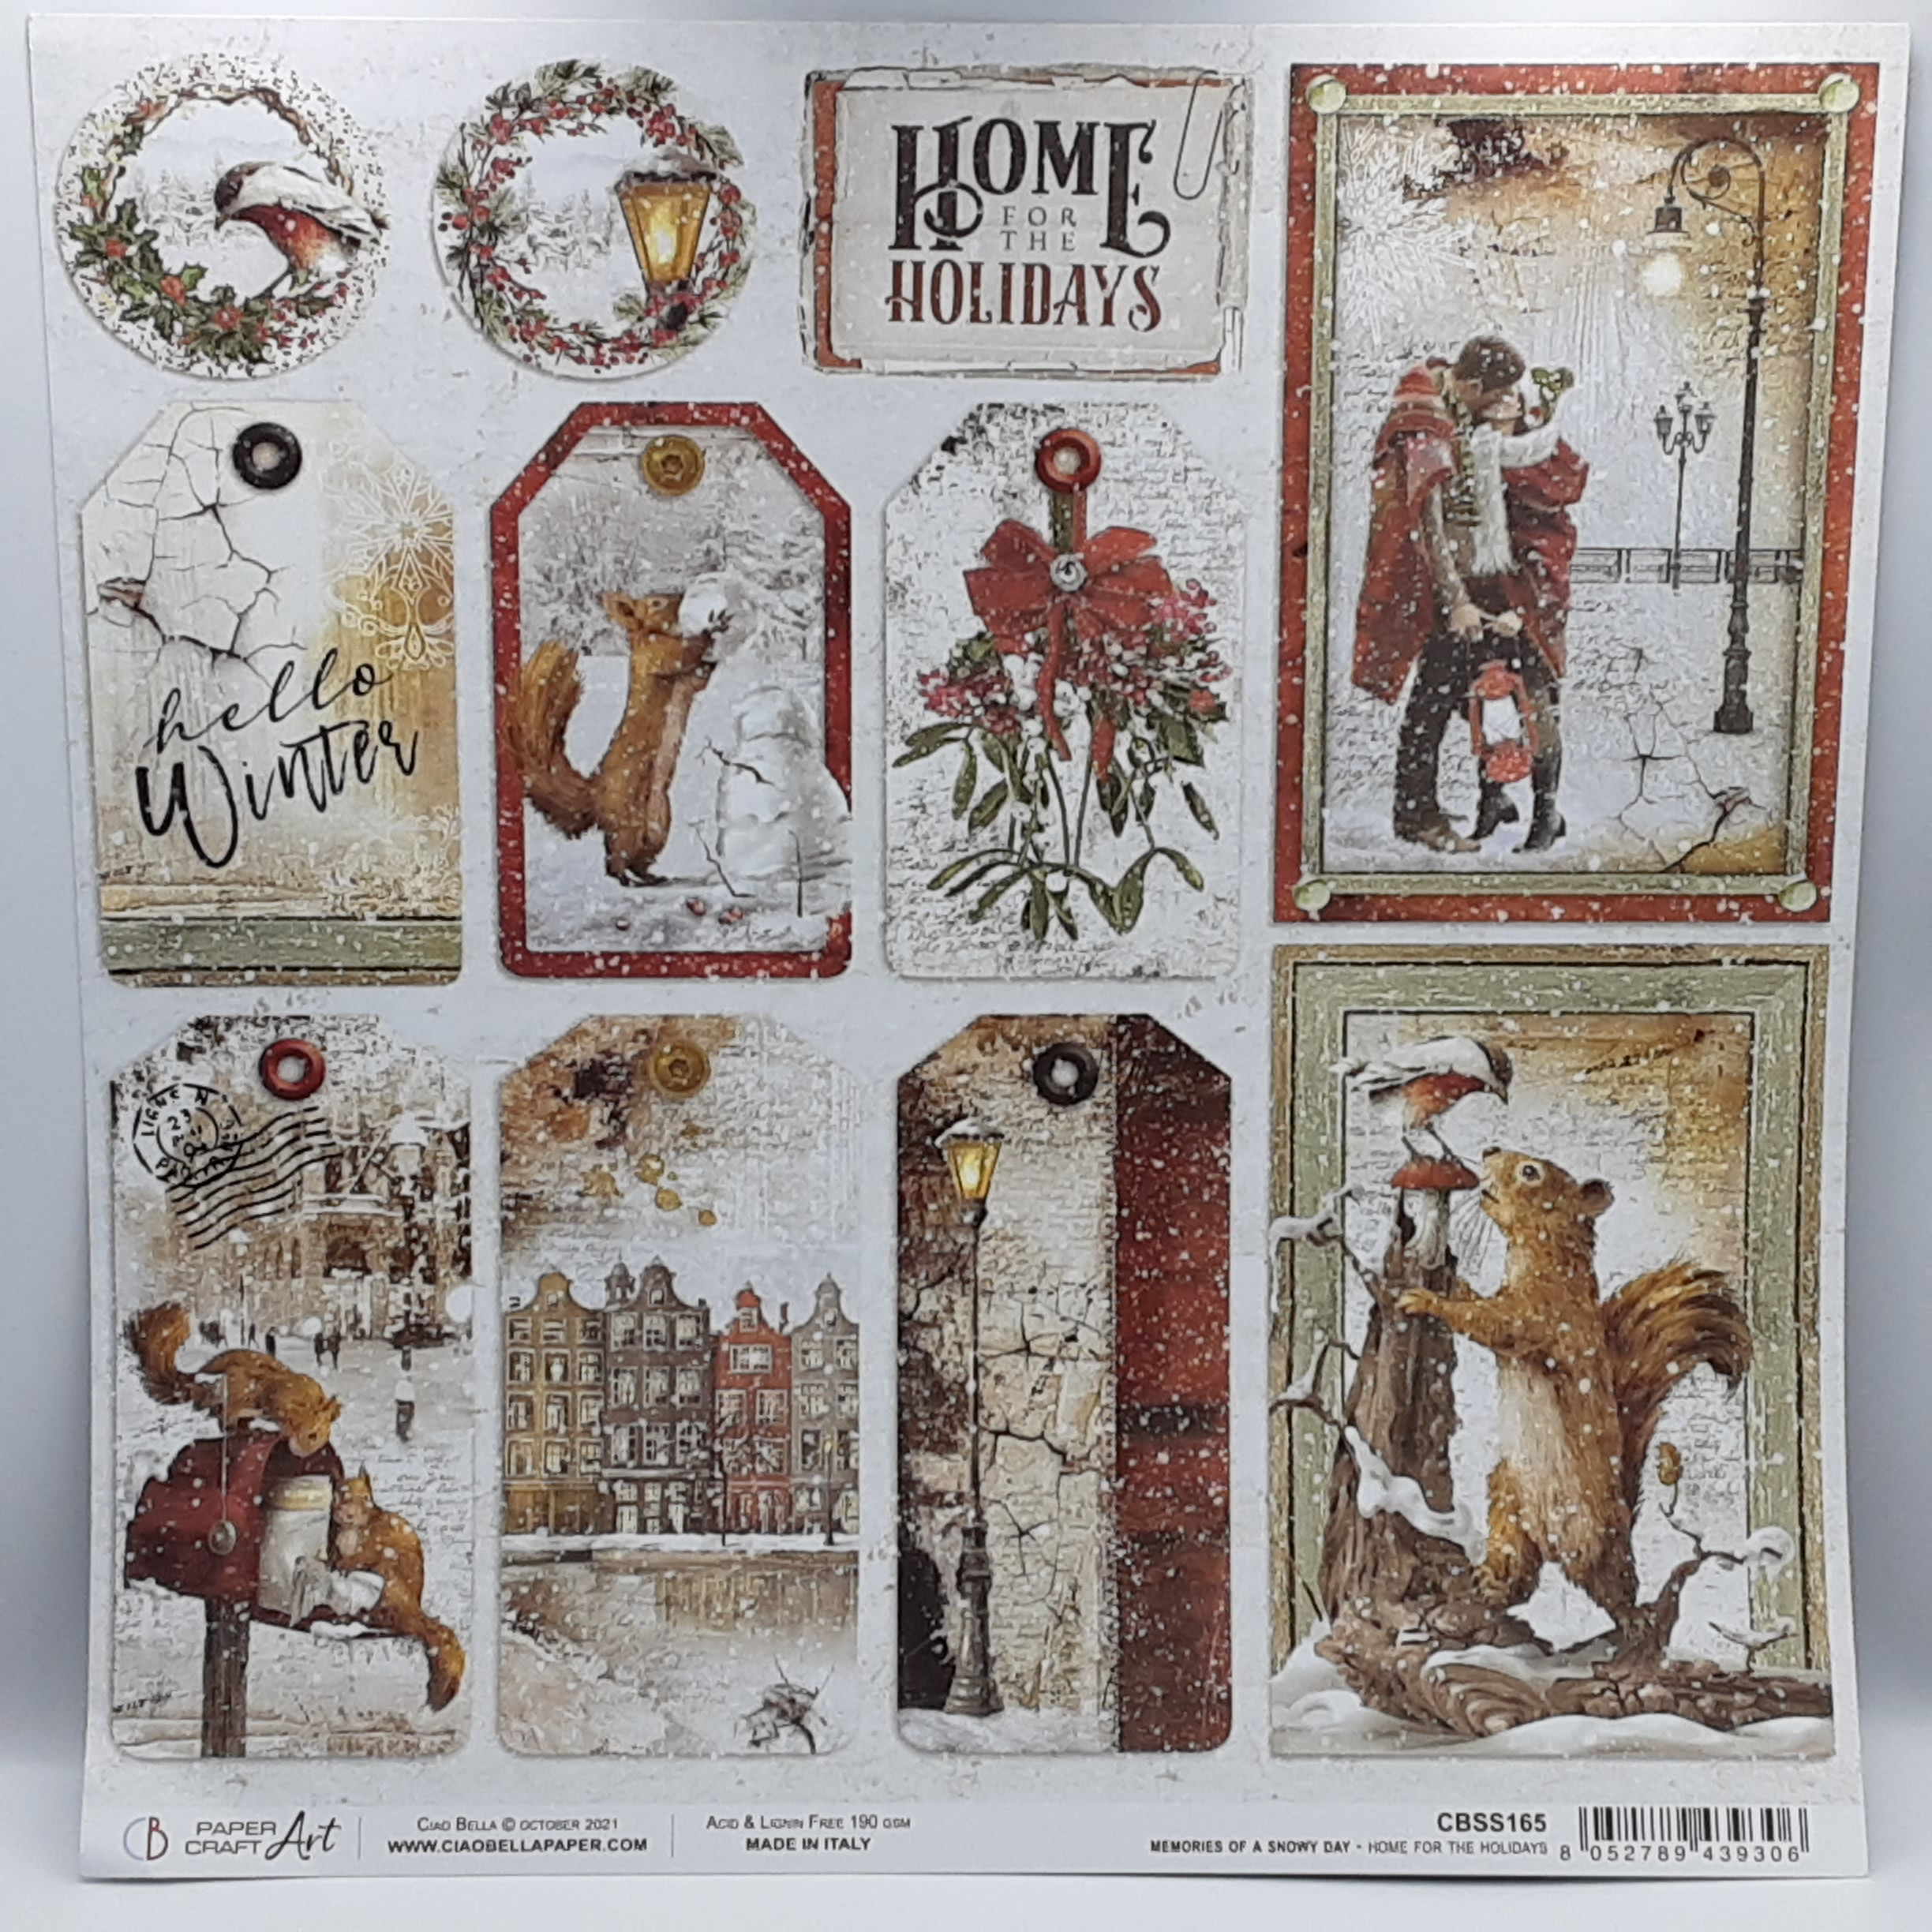 Home for the holidays paper sheet